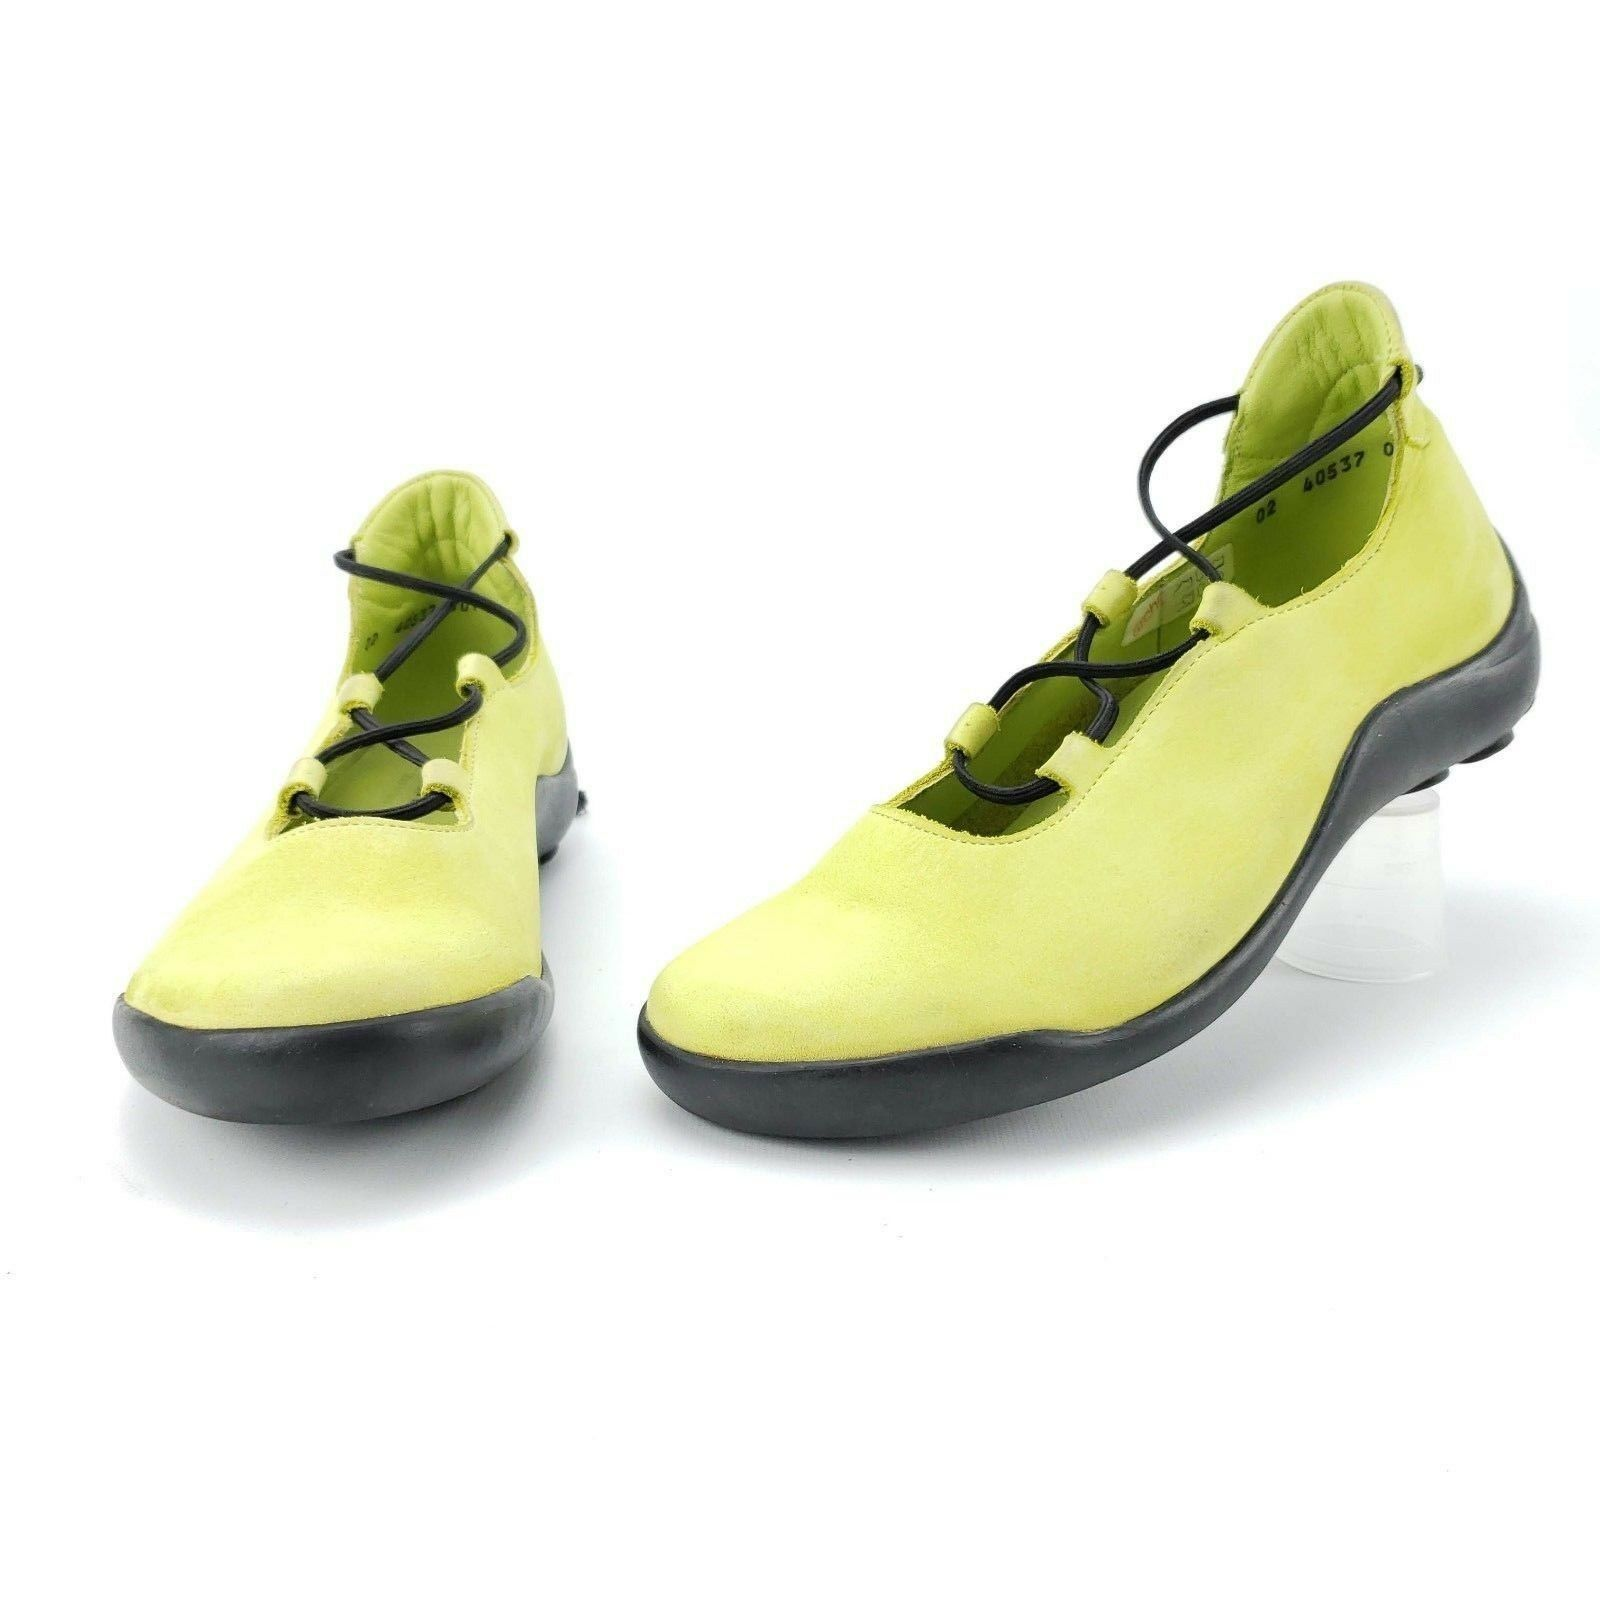 ARCHE France Flats chaussures chaussures chaussures vert jaune sz 6 Adjustable Toggle Cross Laceup baskets 3d6f85